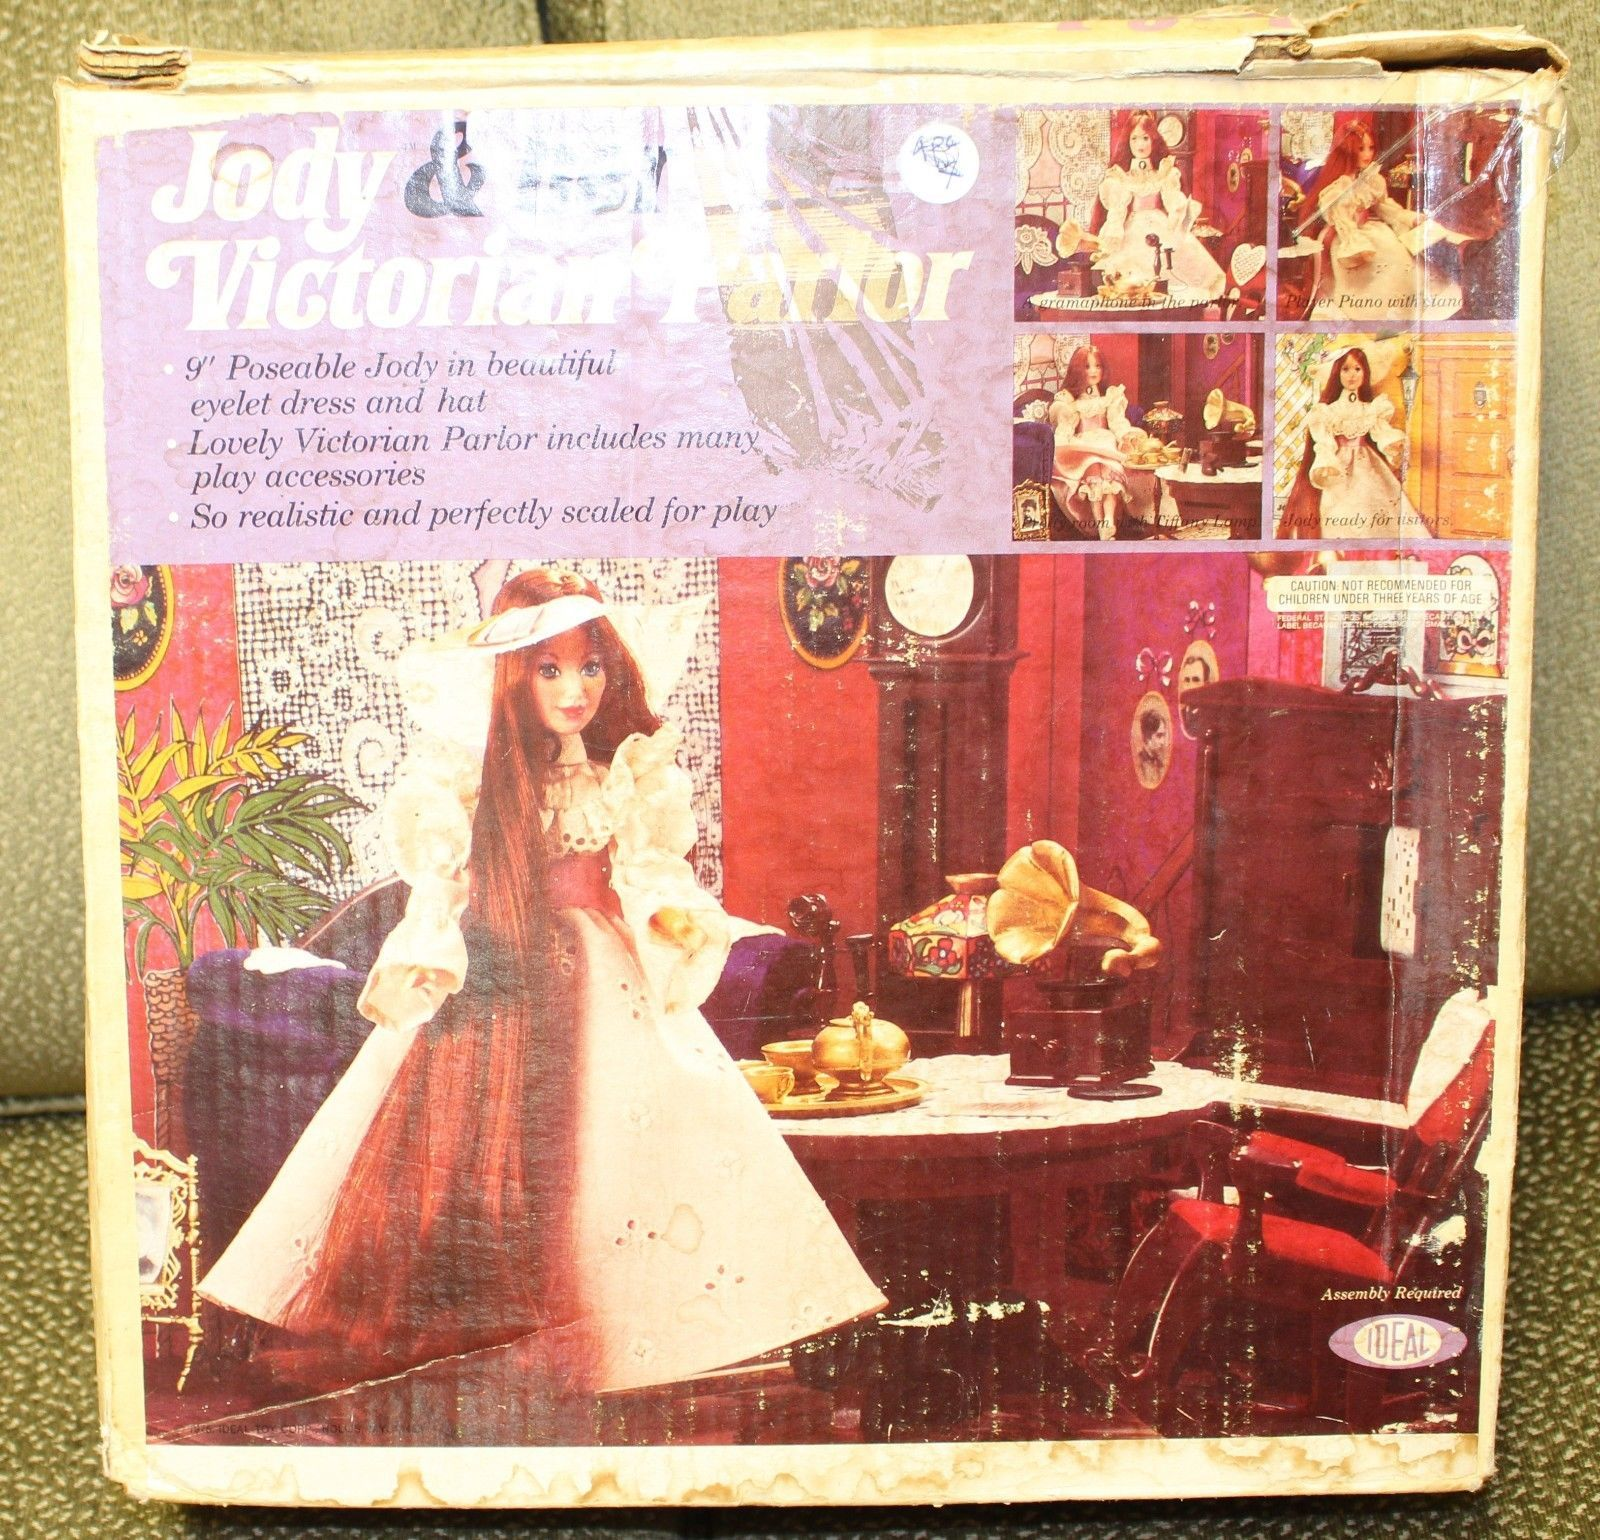 Primary image for Vintage 1975 IDEAL Jody's Victorian Parlor Box Playset W/ Doll Jody